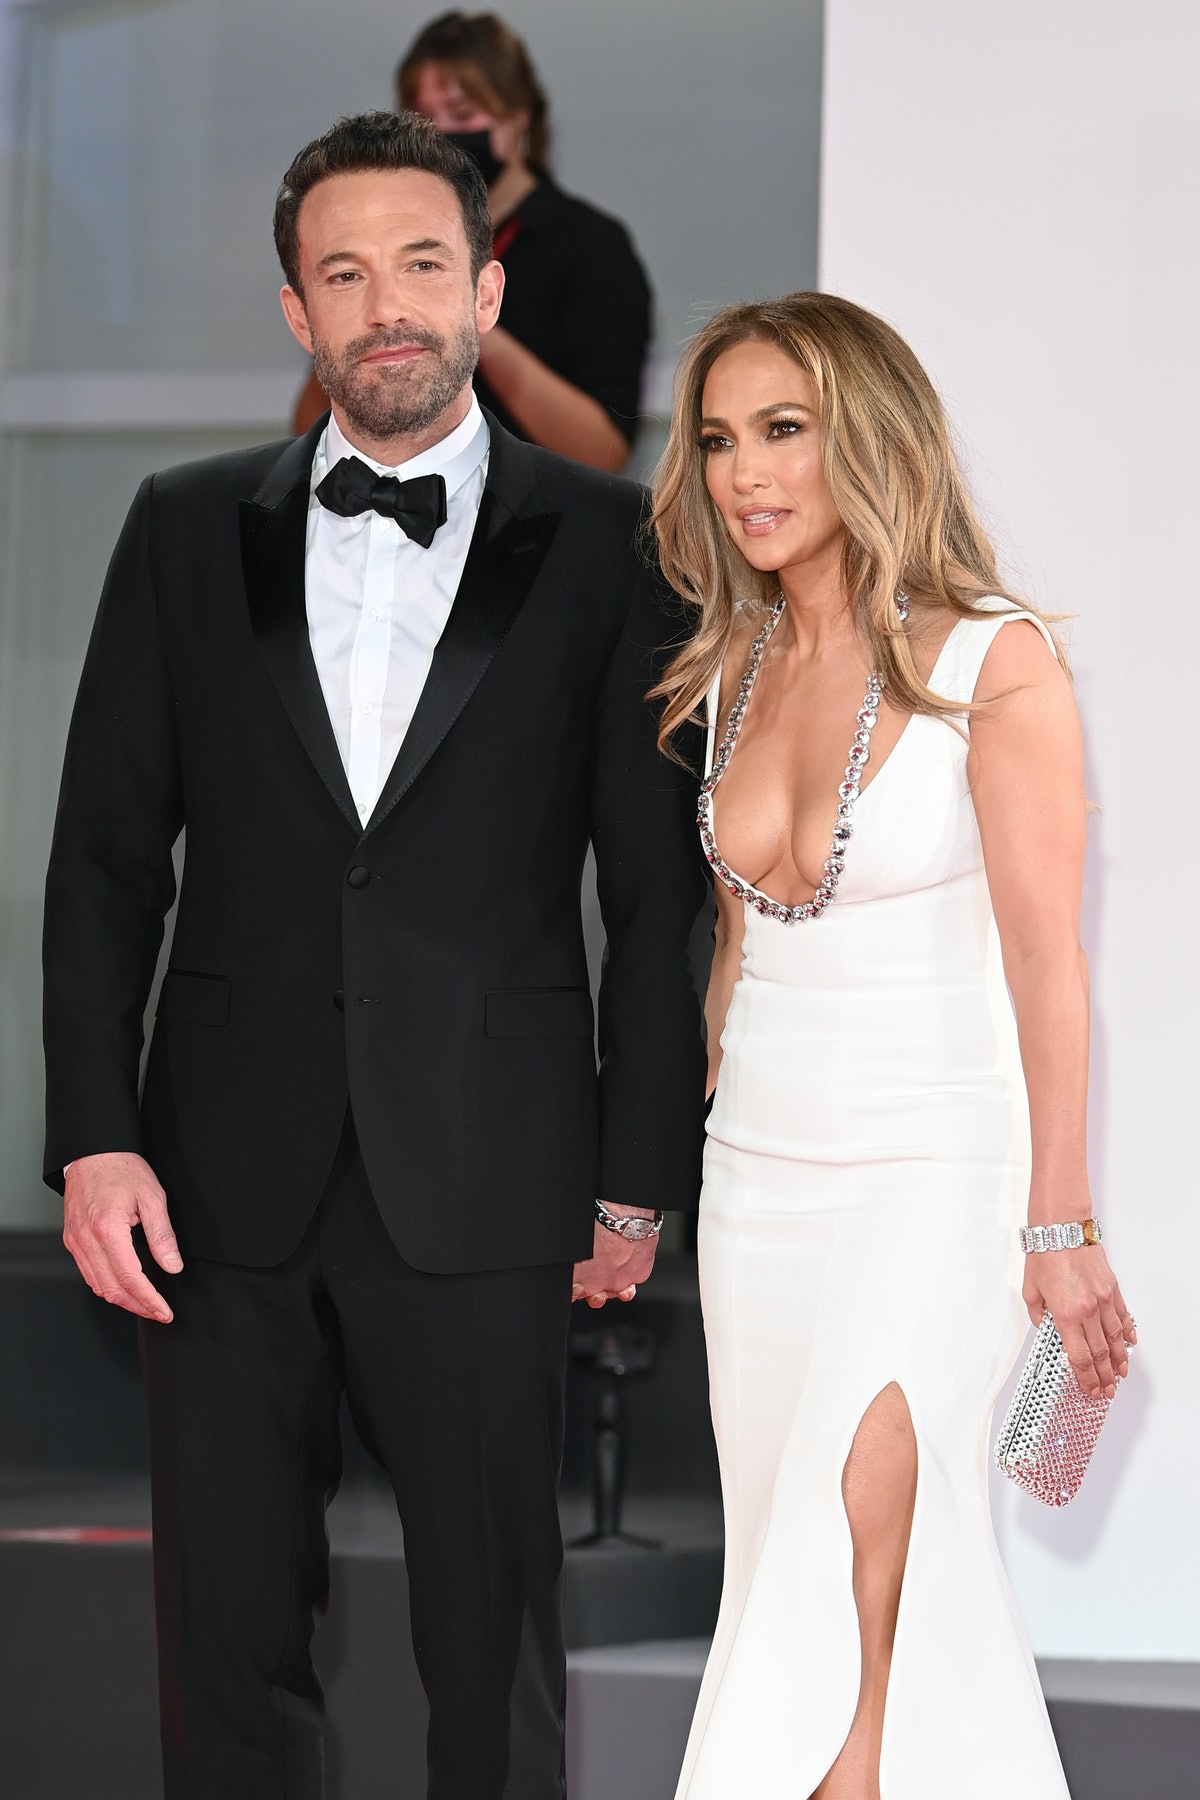 These photos of Jennifer Lopez and Ben Affleck's 2021 red carpet debut are so sweet.